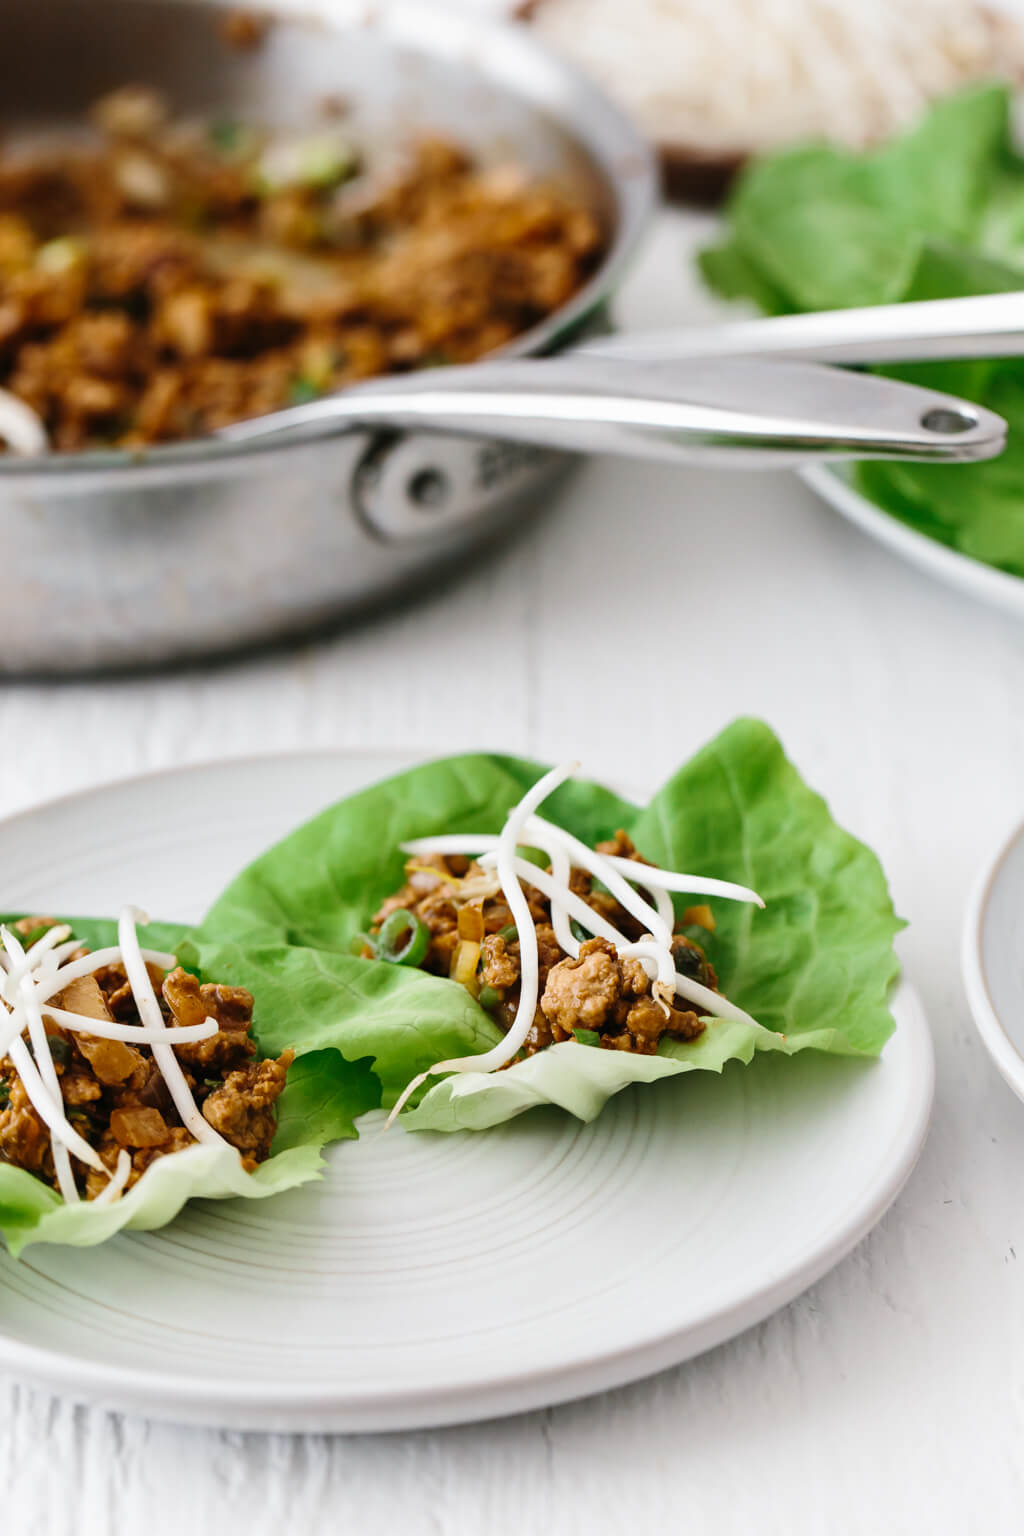 These Asian Chicken Lettuce Wraps are reminiscent of PF Chang's Chicken Lettuce Wraps, yet they're gluten-free, paleo and much healthier. It's a family favorite chicken dinner recipe.